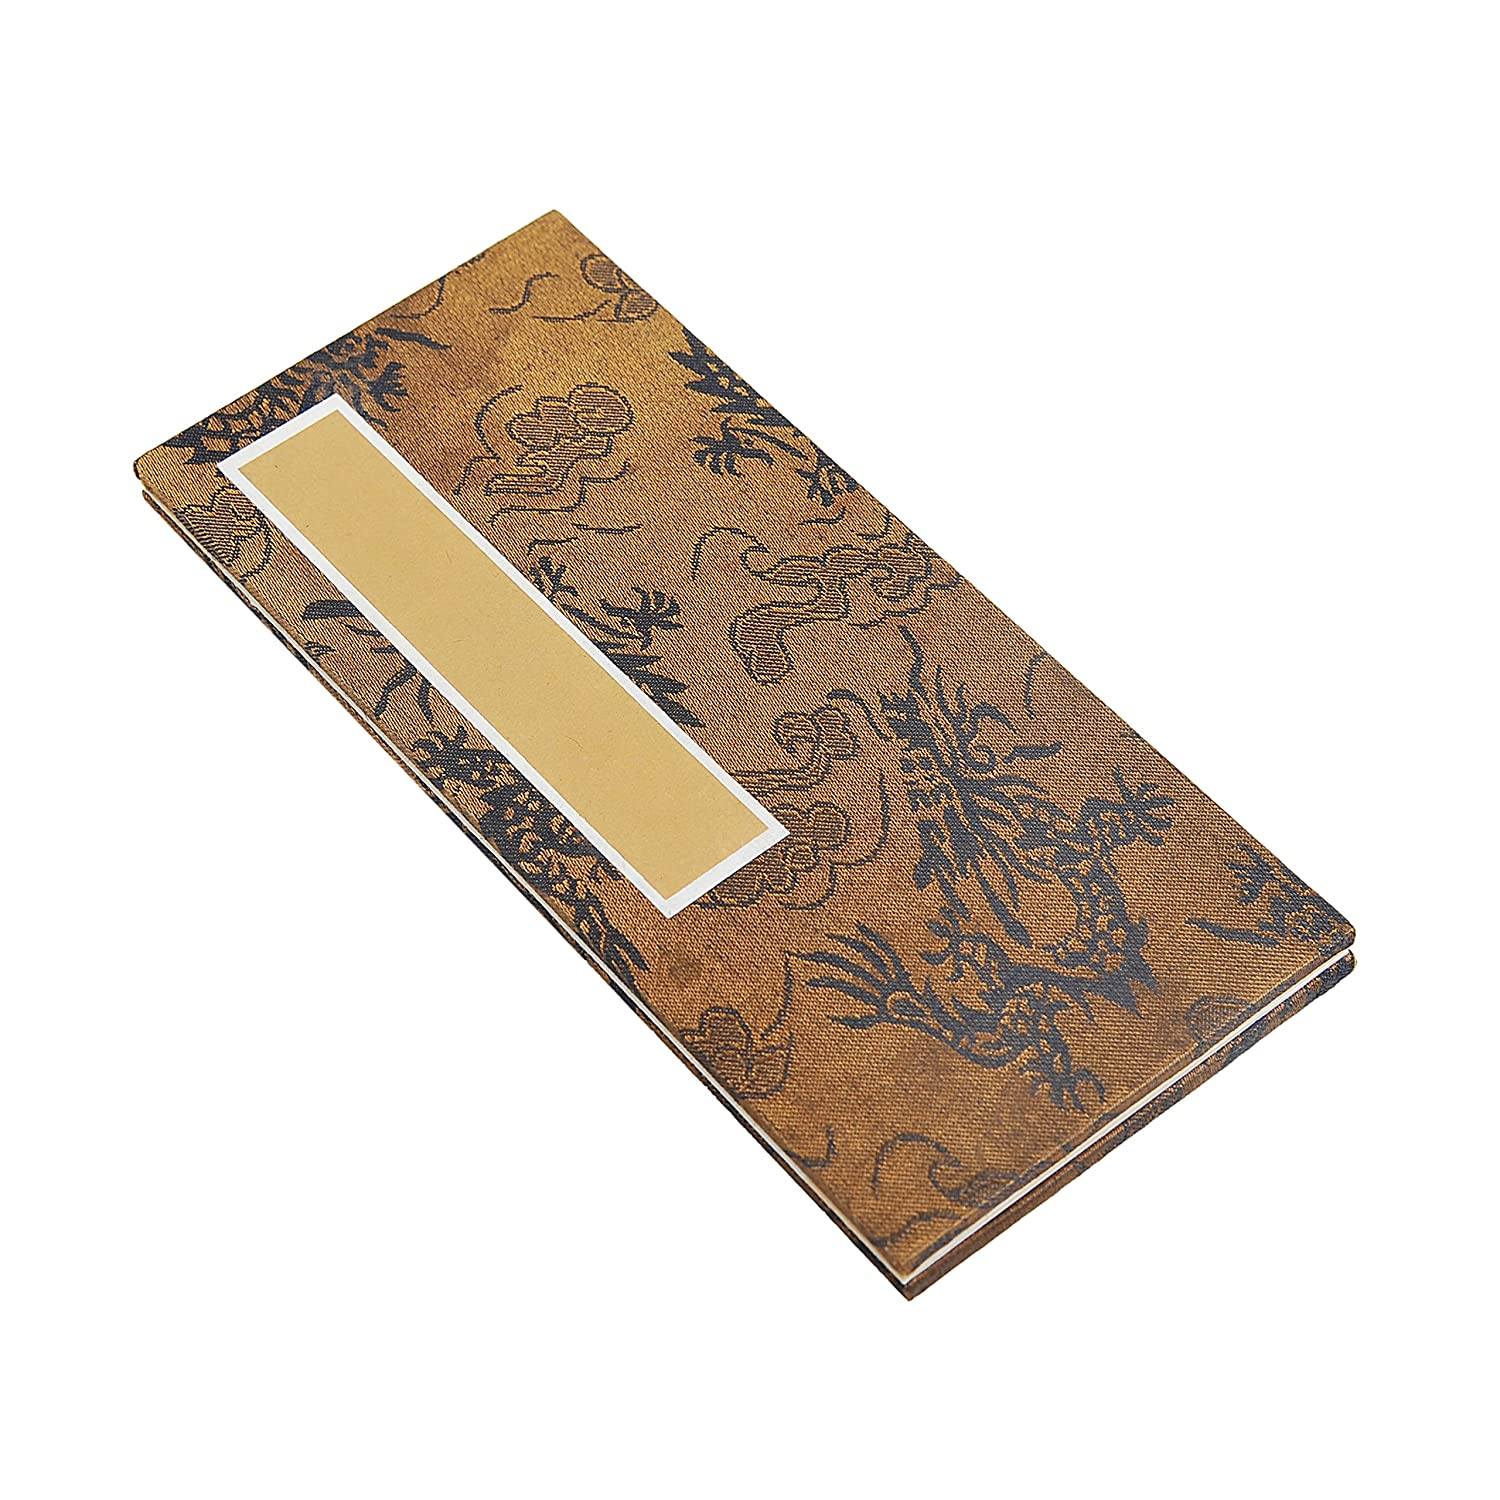 CY049 Hmayart Small Ancient Sketch-Book/Notebook for Sumi Paintings and Brush Calligraphy (8 x 18 cm) (2)